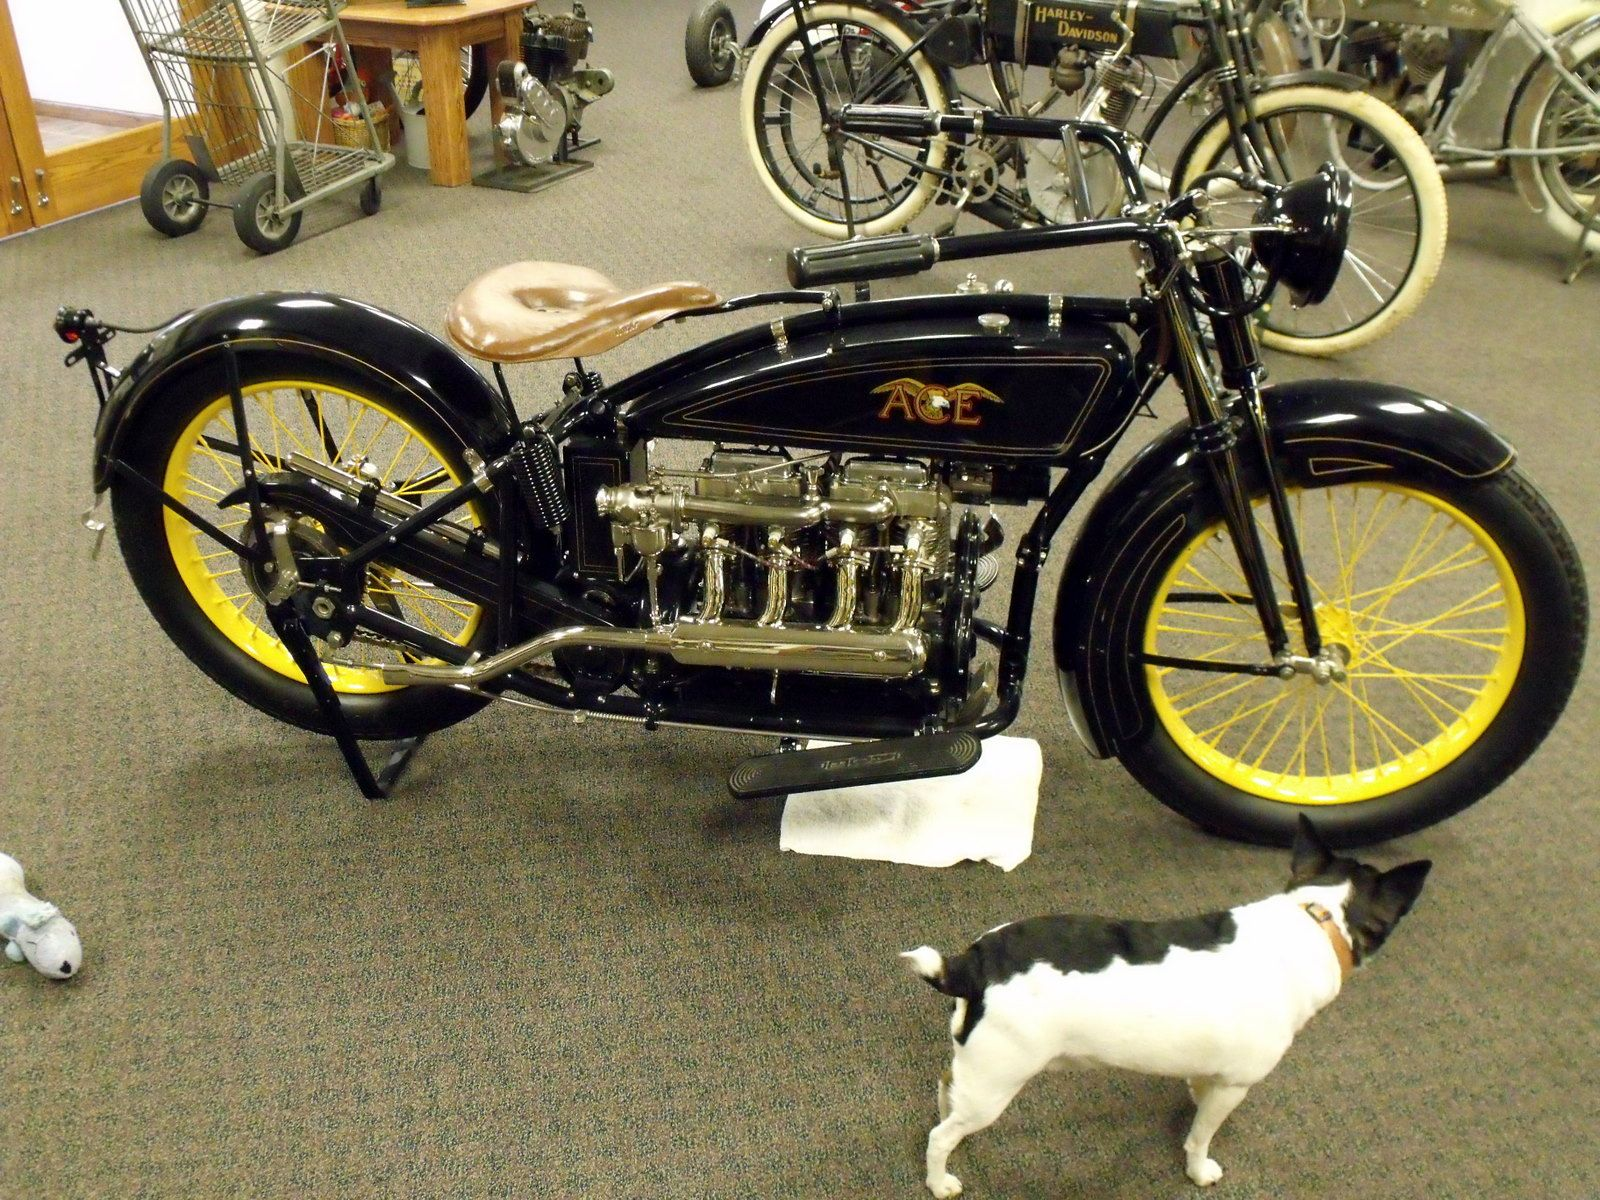 1922 Ace Motorcycle Painted By Dutch Bros Garage Contact Info Dutchbrosgarage Gmail Com Motorcycle Painting Motorcycle Antique Motorcycles